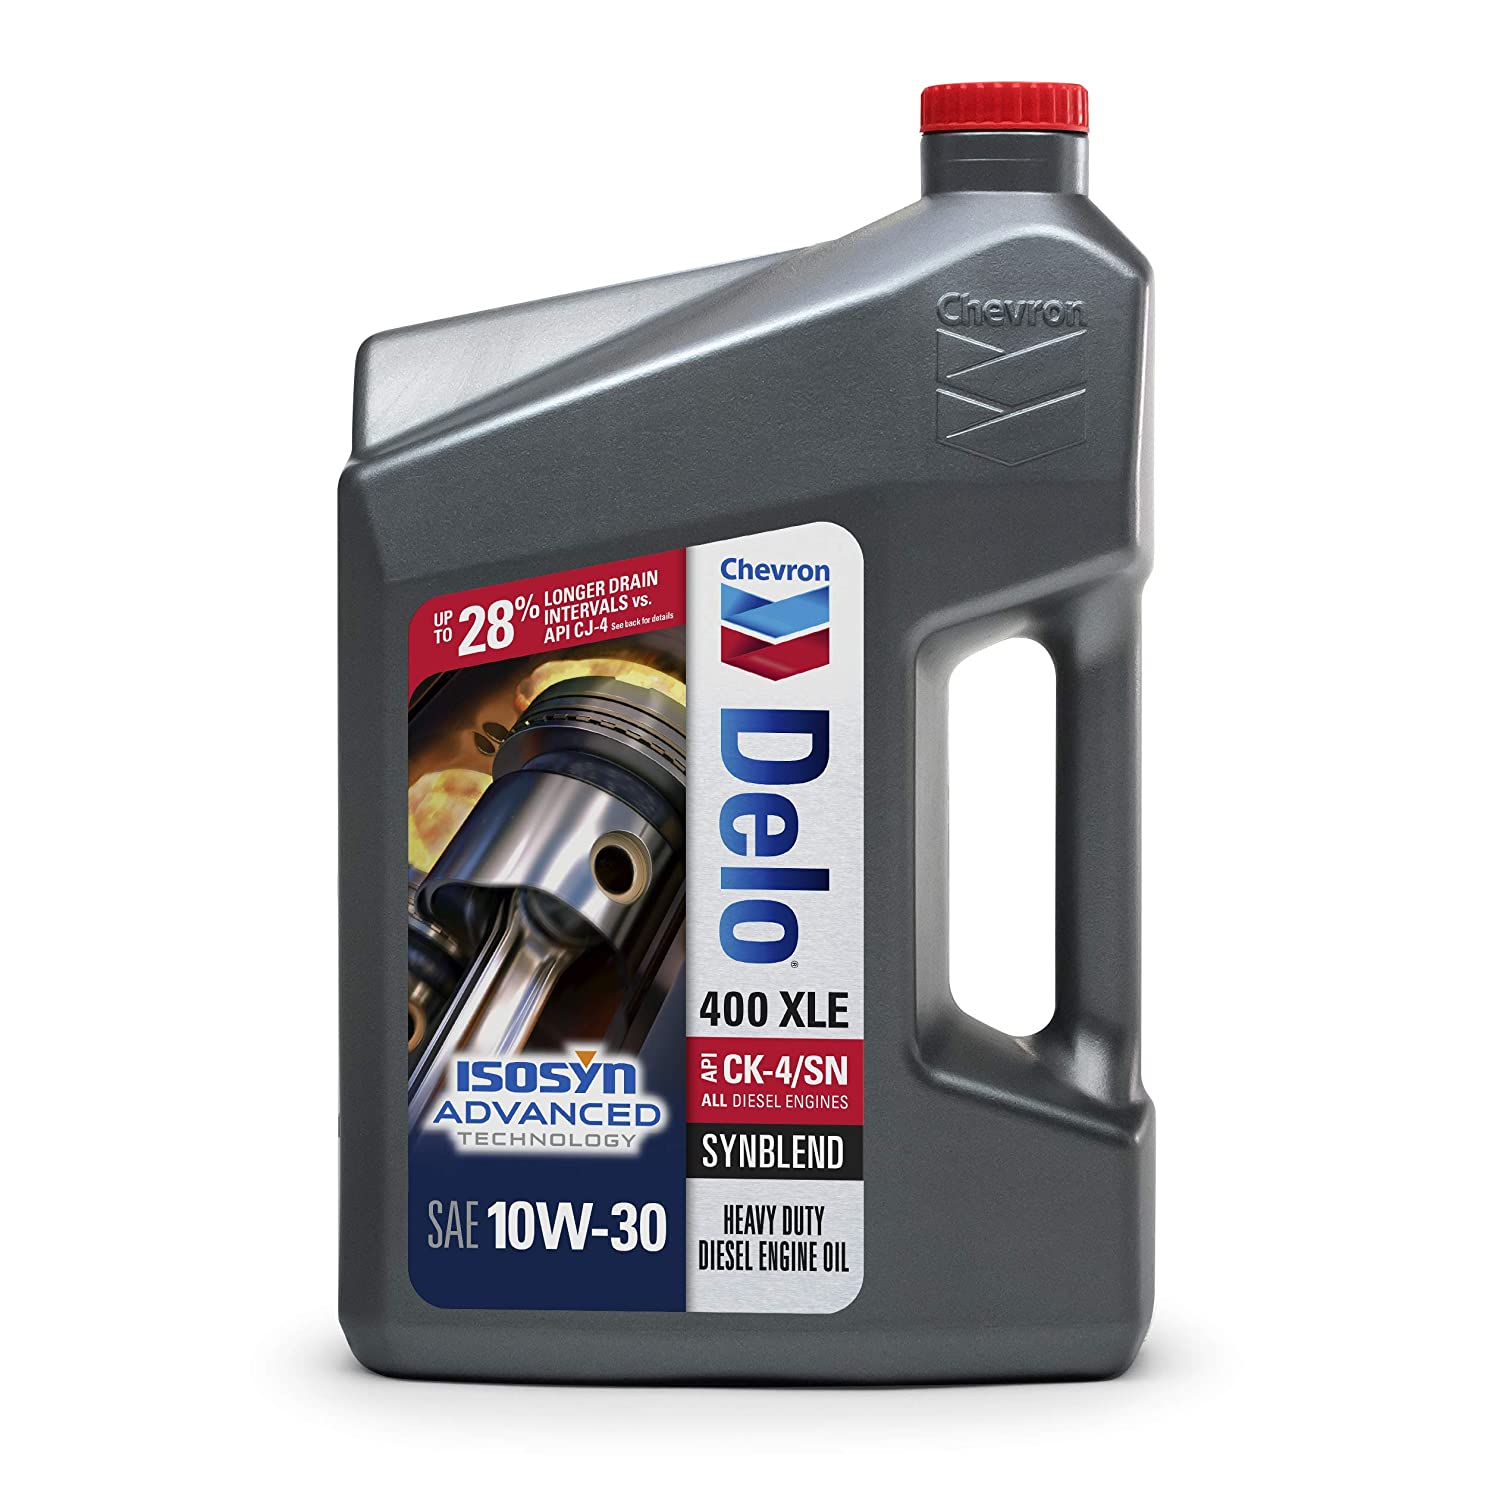 Amazon.com: Delo 400 XLE 10W-30 Synblend Motor Oil - 1 Gallon, (Pack of 3): Automotive